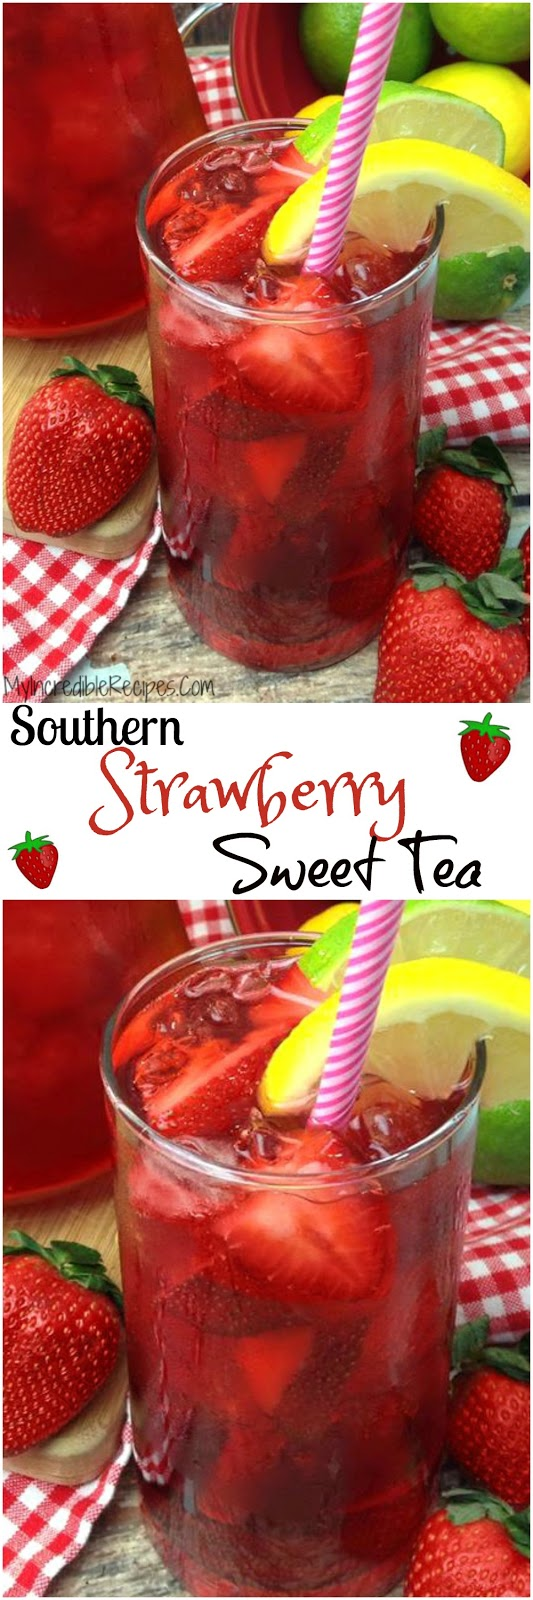 Southern Strawberry Sweet Tea! - Recipes